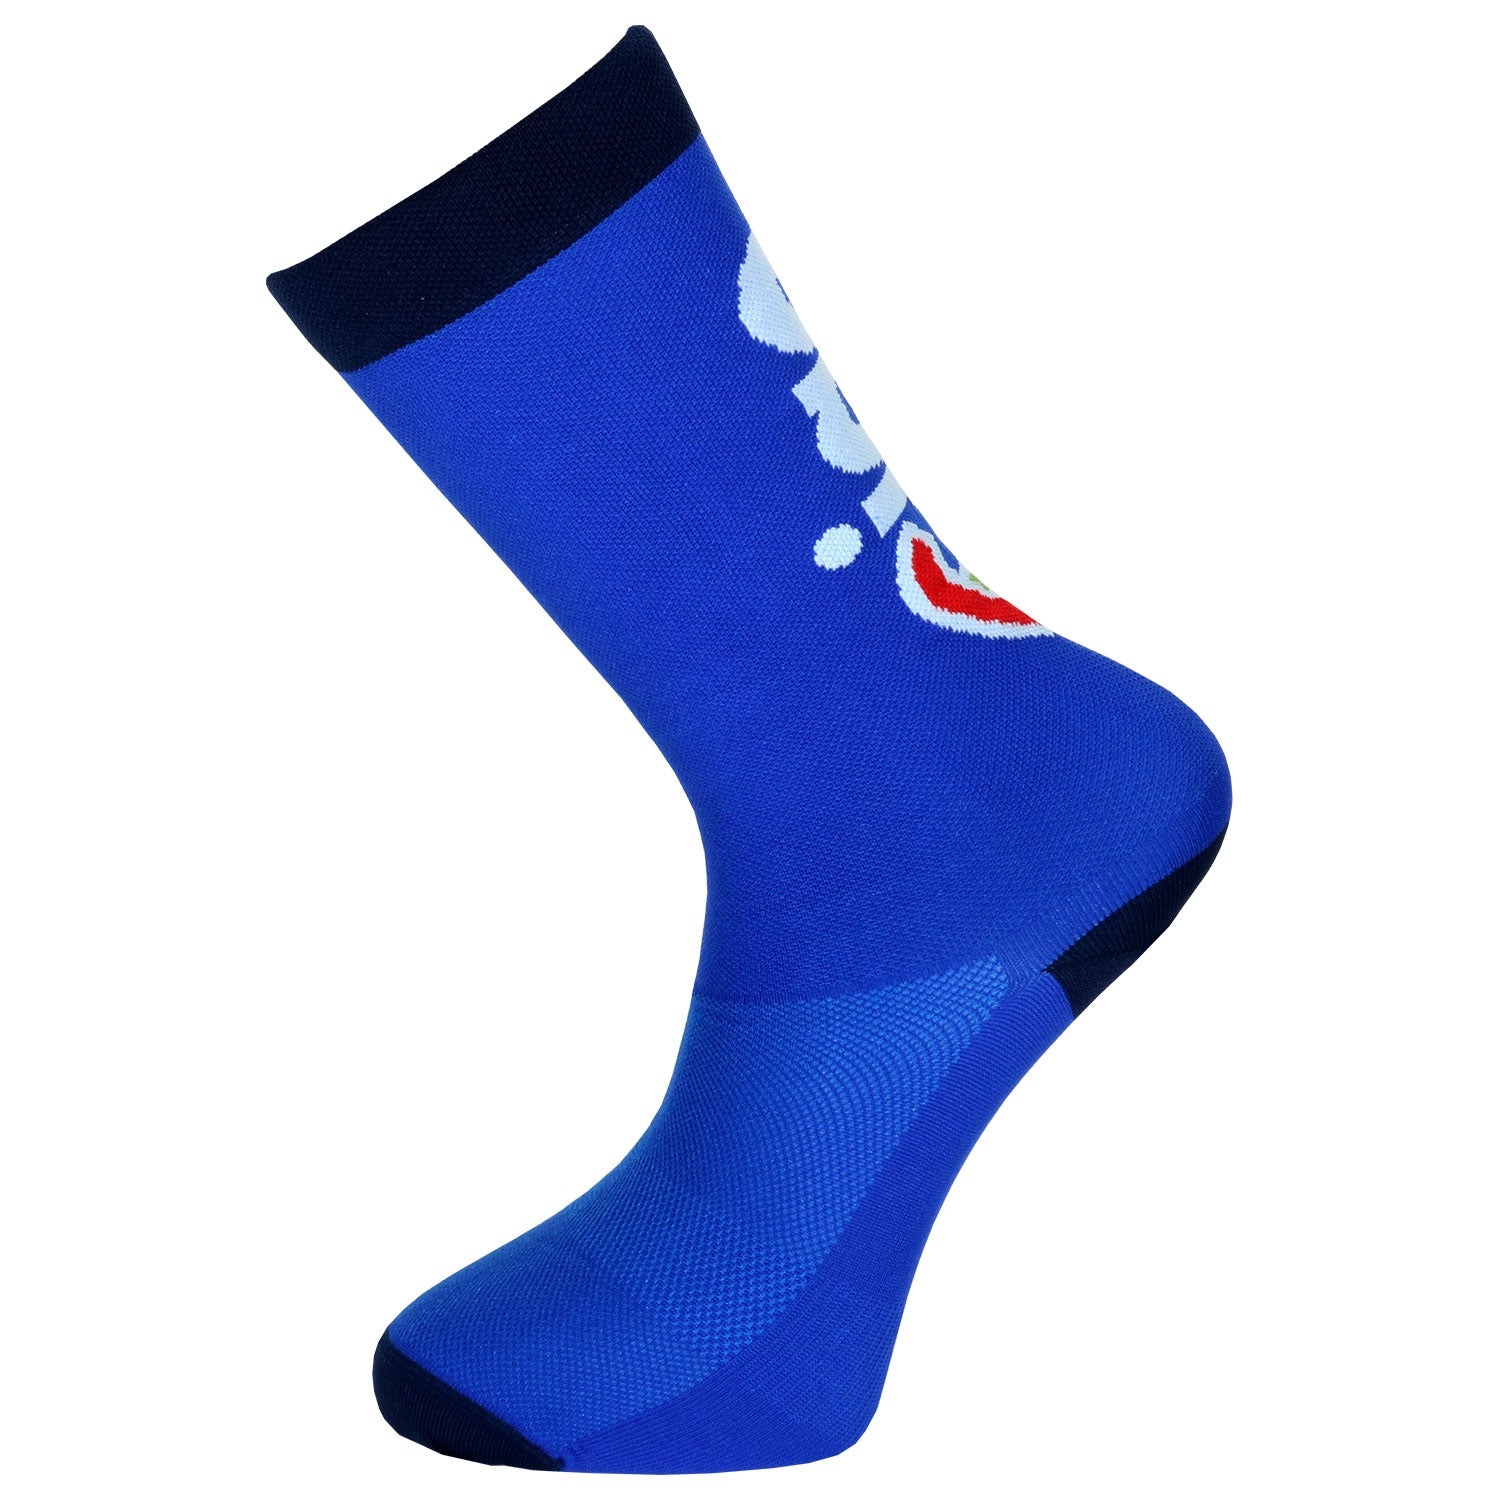 Cinelli Ciao Blue Cycling Socks